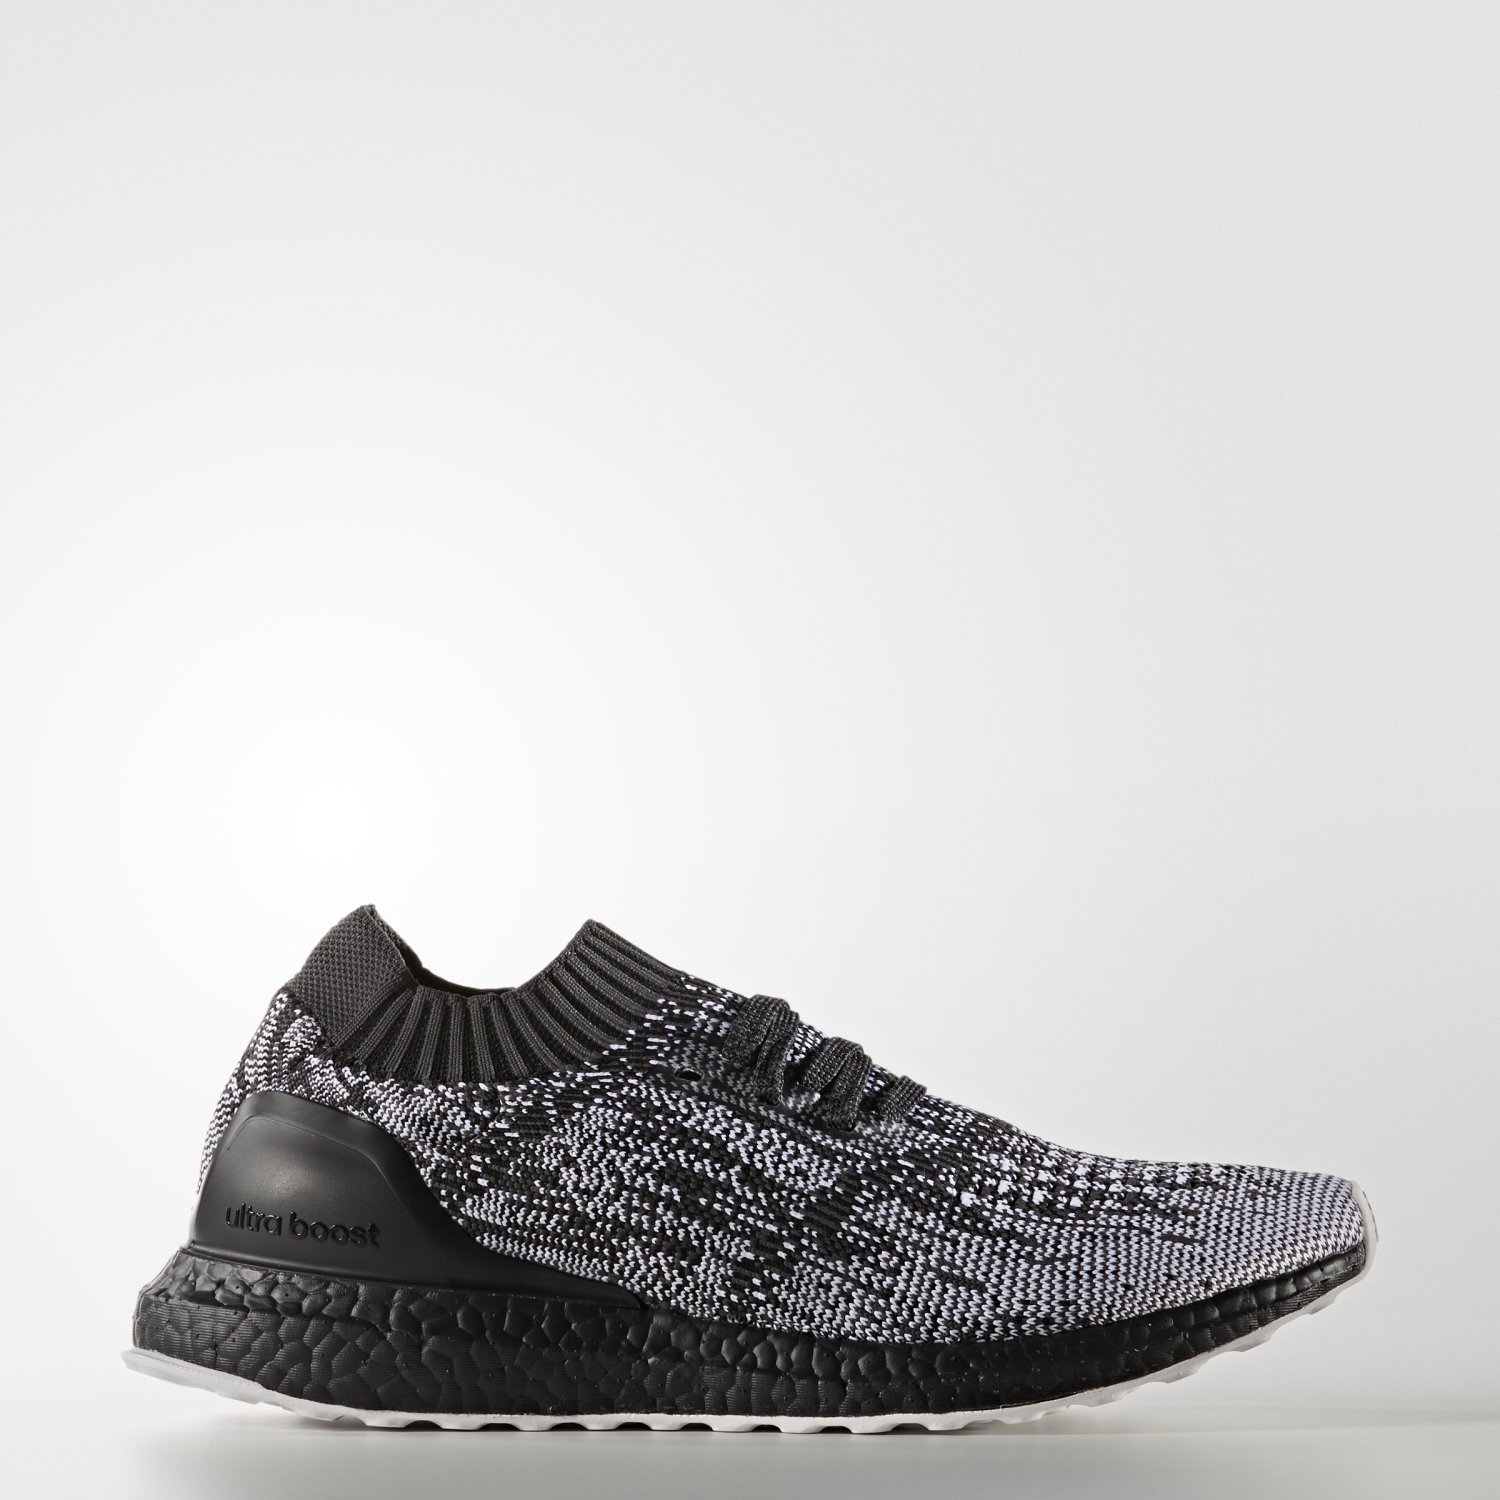 ULTRA BOOST UNCAGED SHOES Color Core Black / DGH Solid Gray / Running Wha